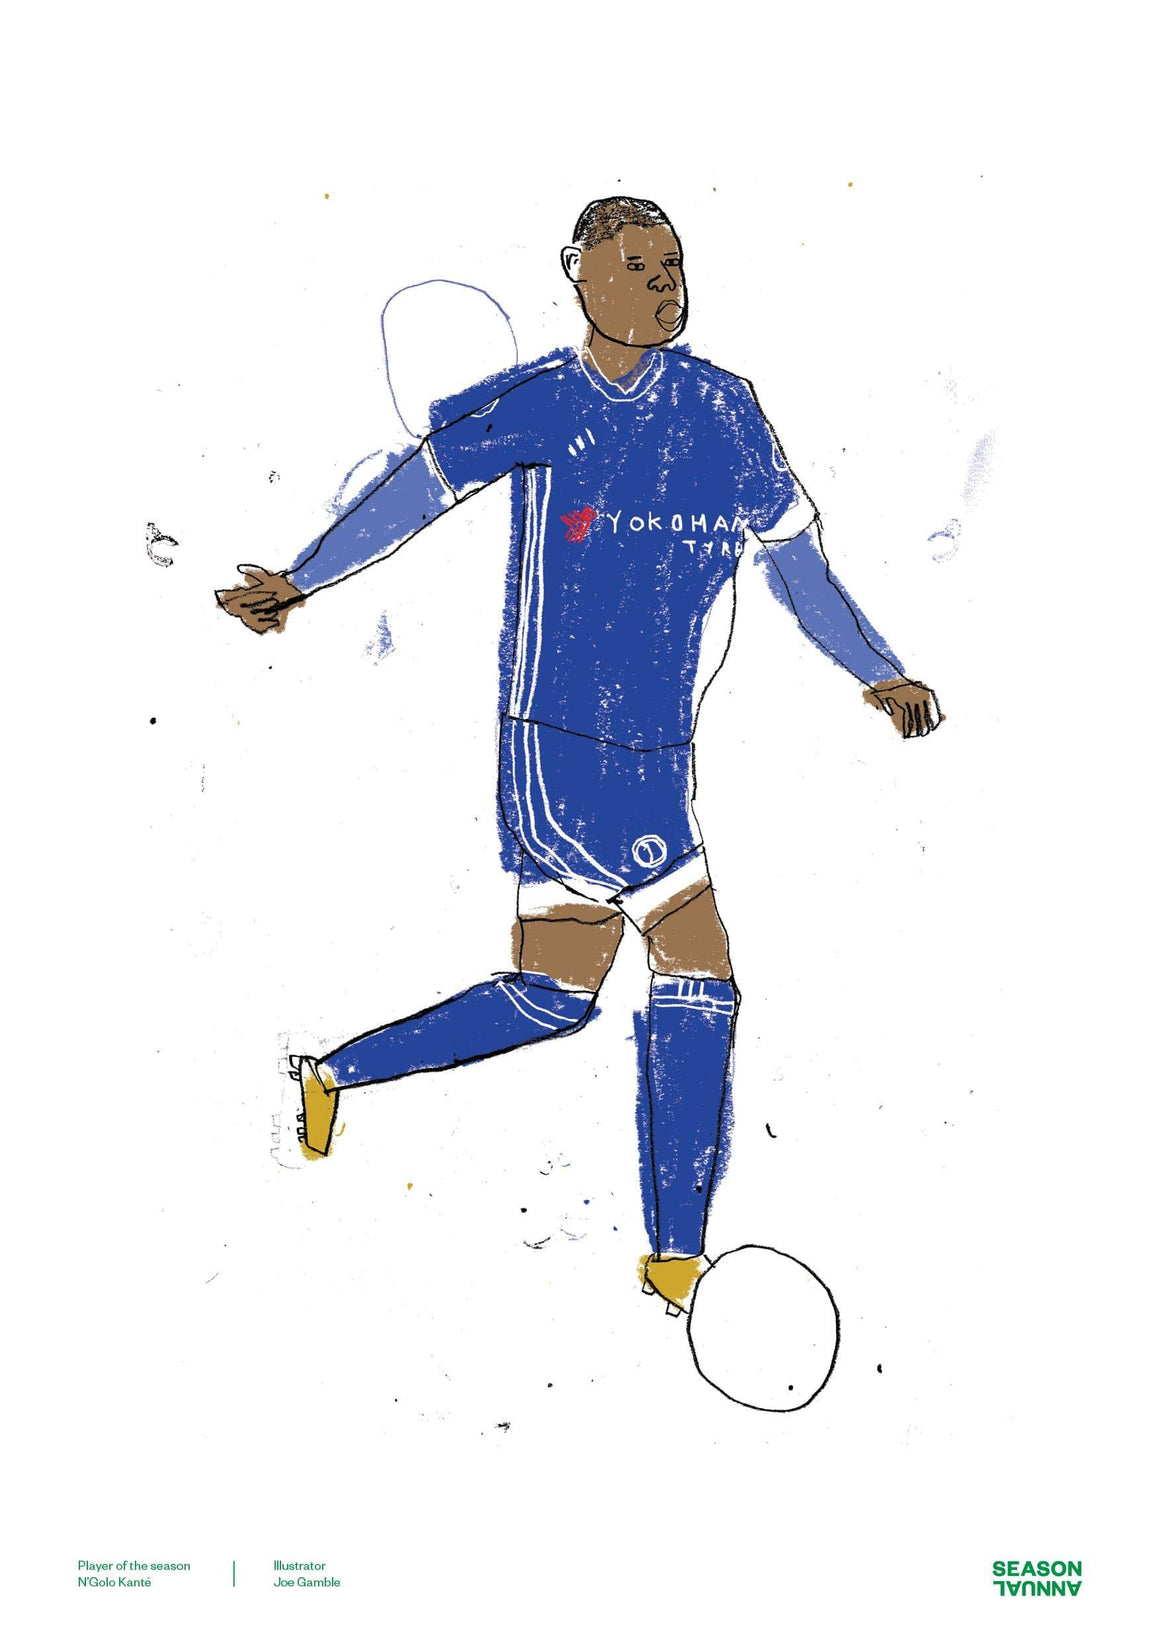 Season Annual A3 poster of Chelsea player of the season N'Golo Kante